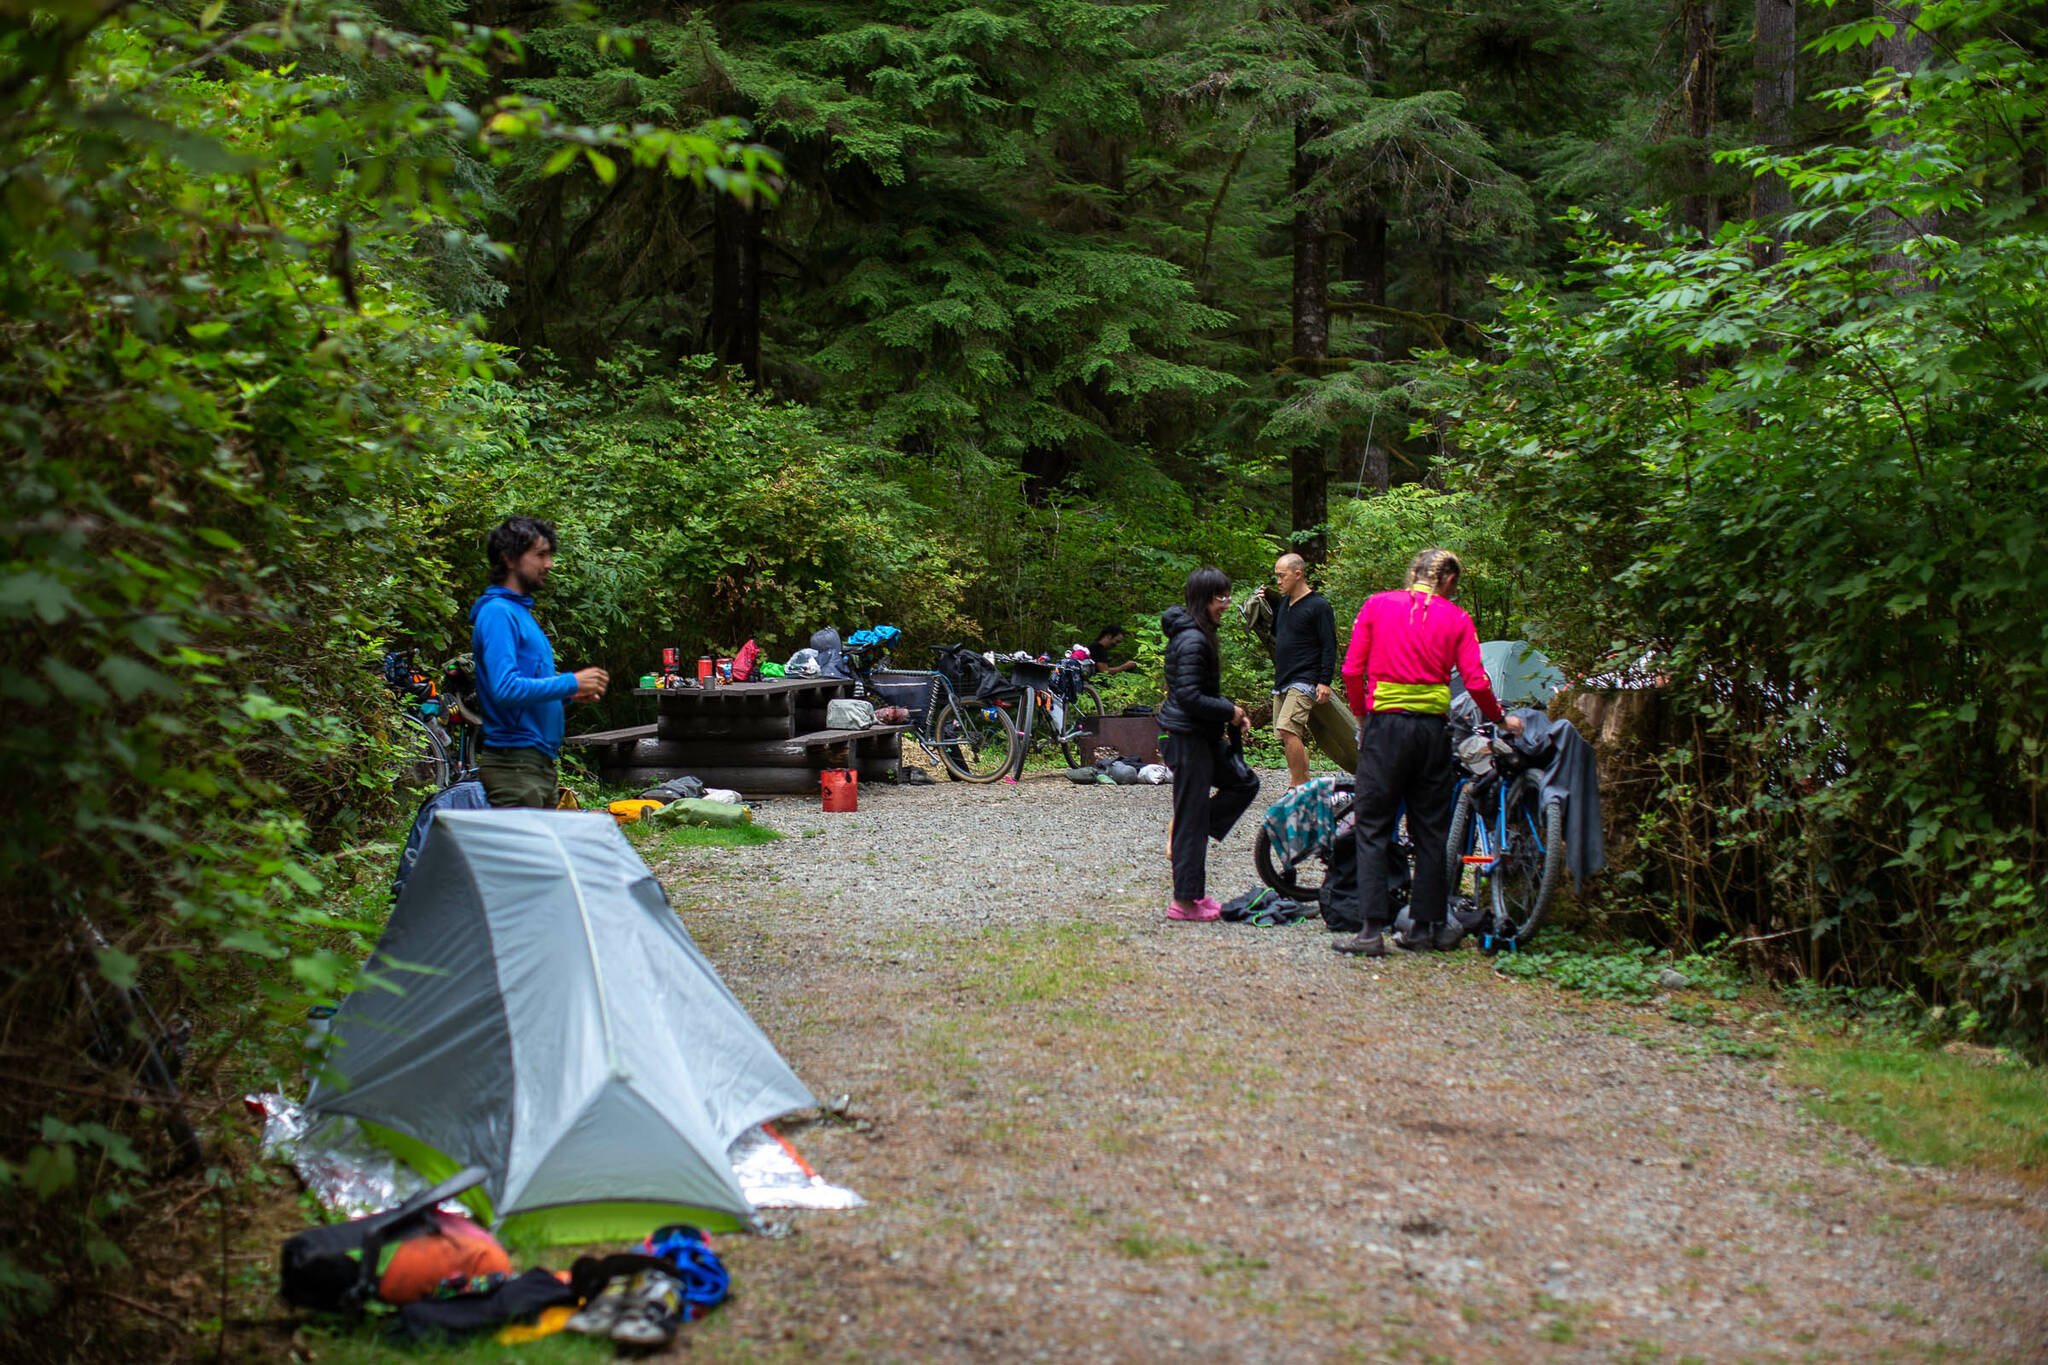 Bikepacking is a mix of lightweight backpacking and bicycle touring. Photo courtesy Miles Arbor